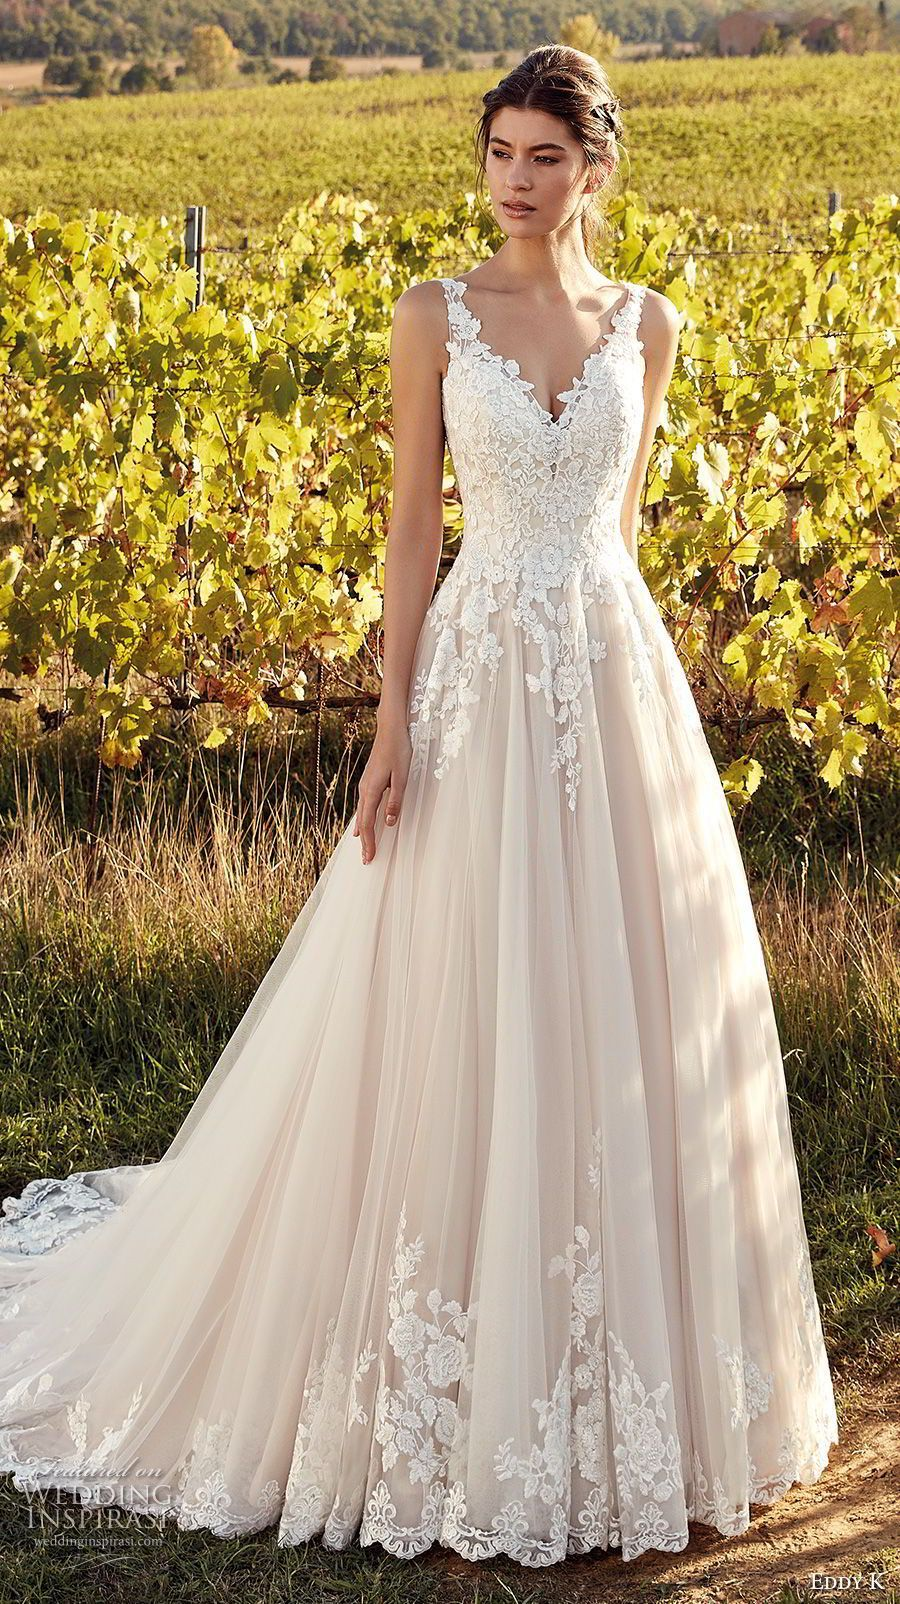 Bodice wedding dress  Eddy K  Wedding Dresses  romantic weddings  Pinterest